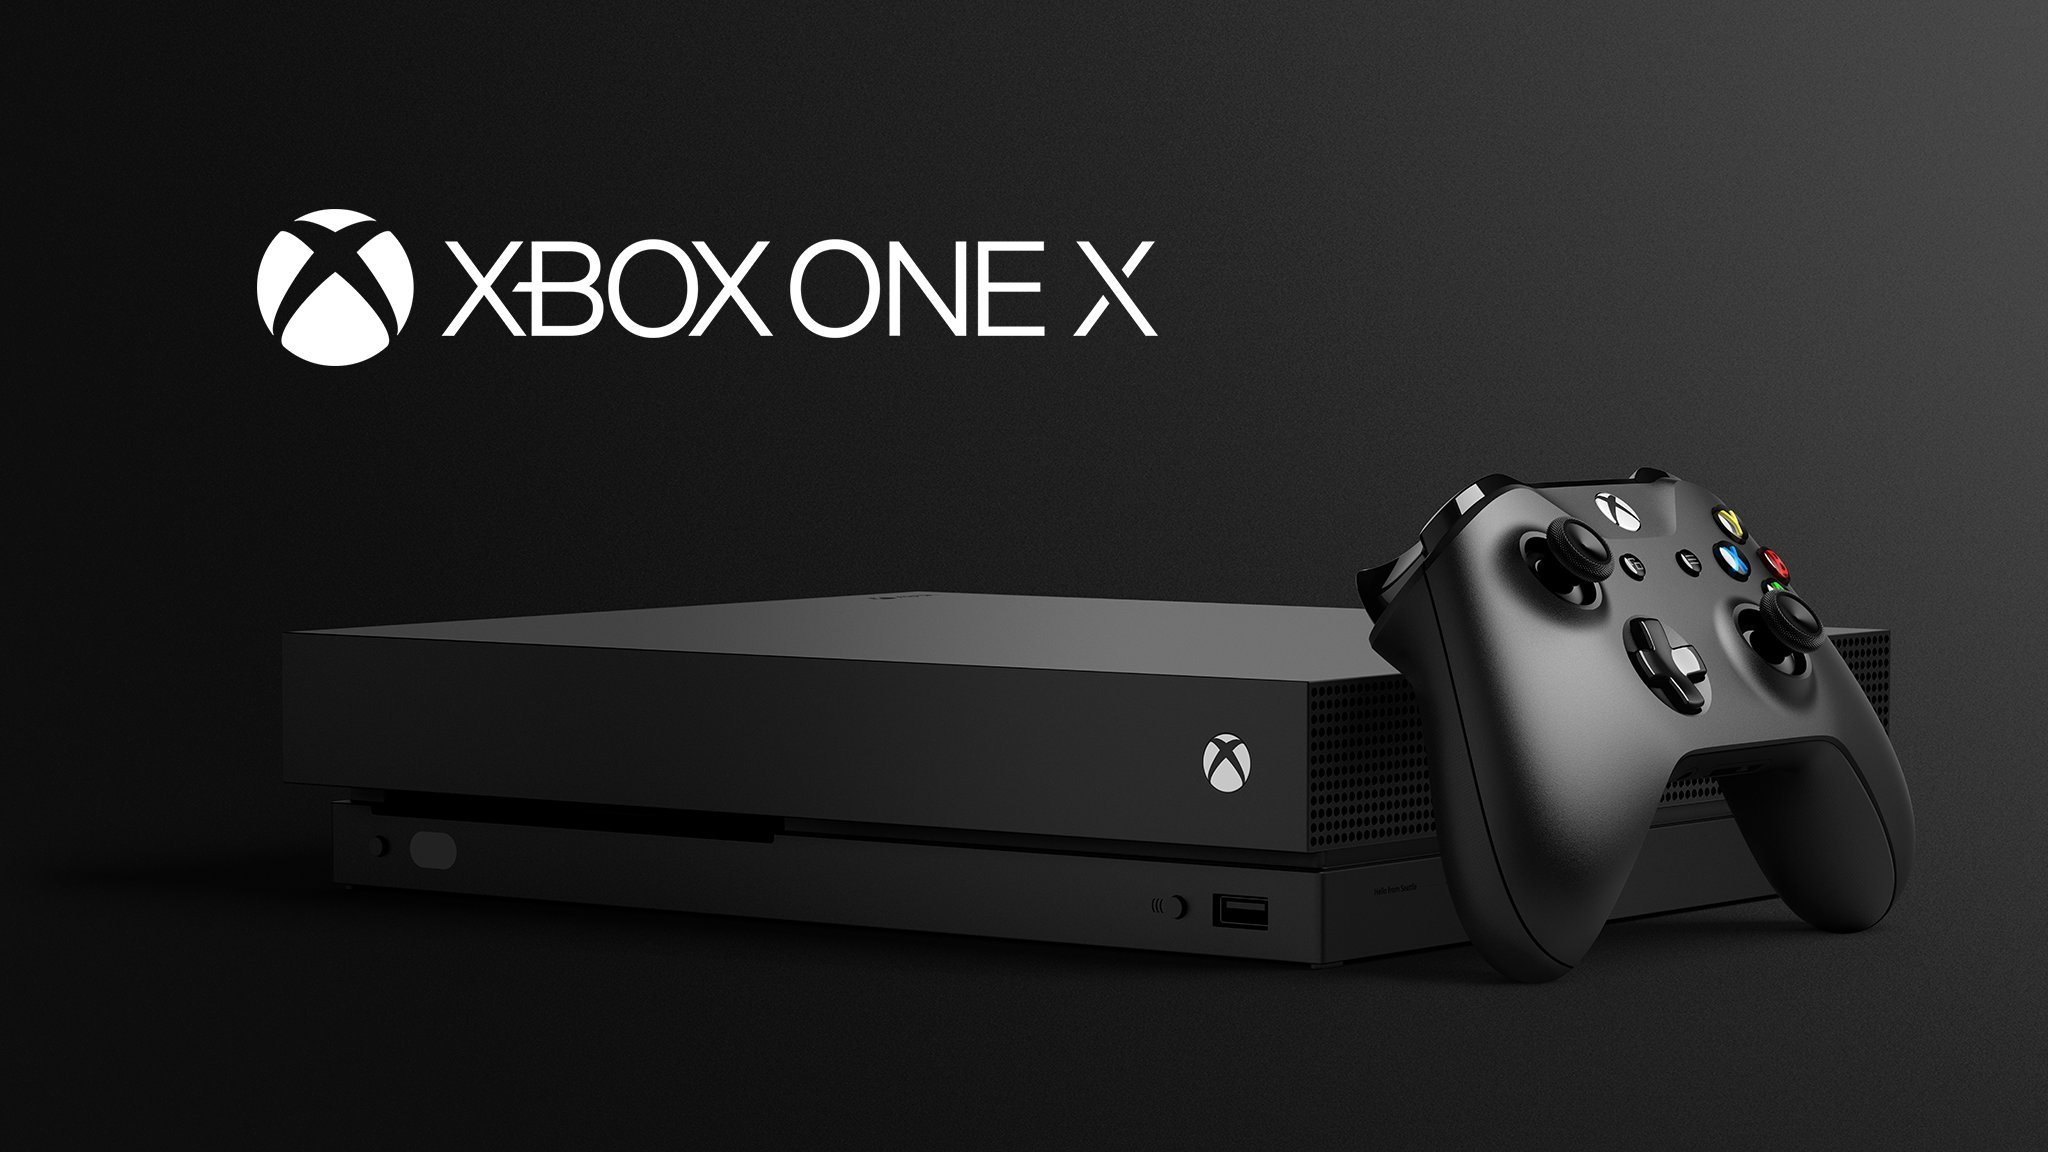 Play H.265 4K Videos on Xbox One X